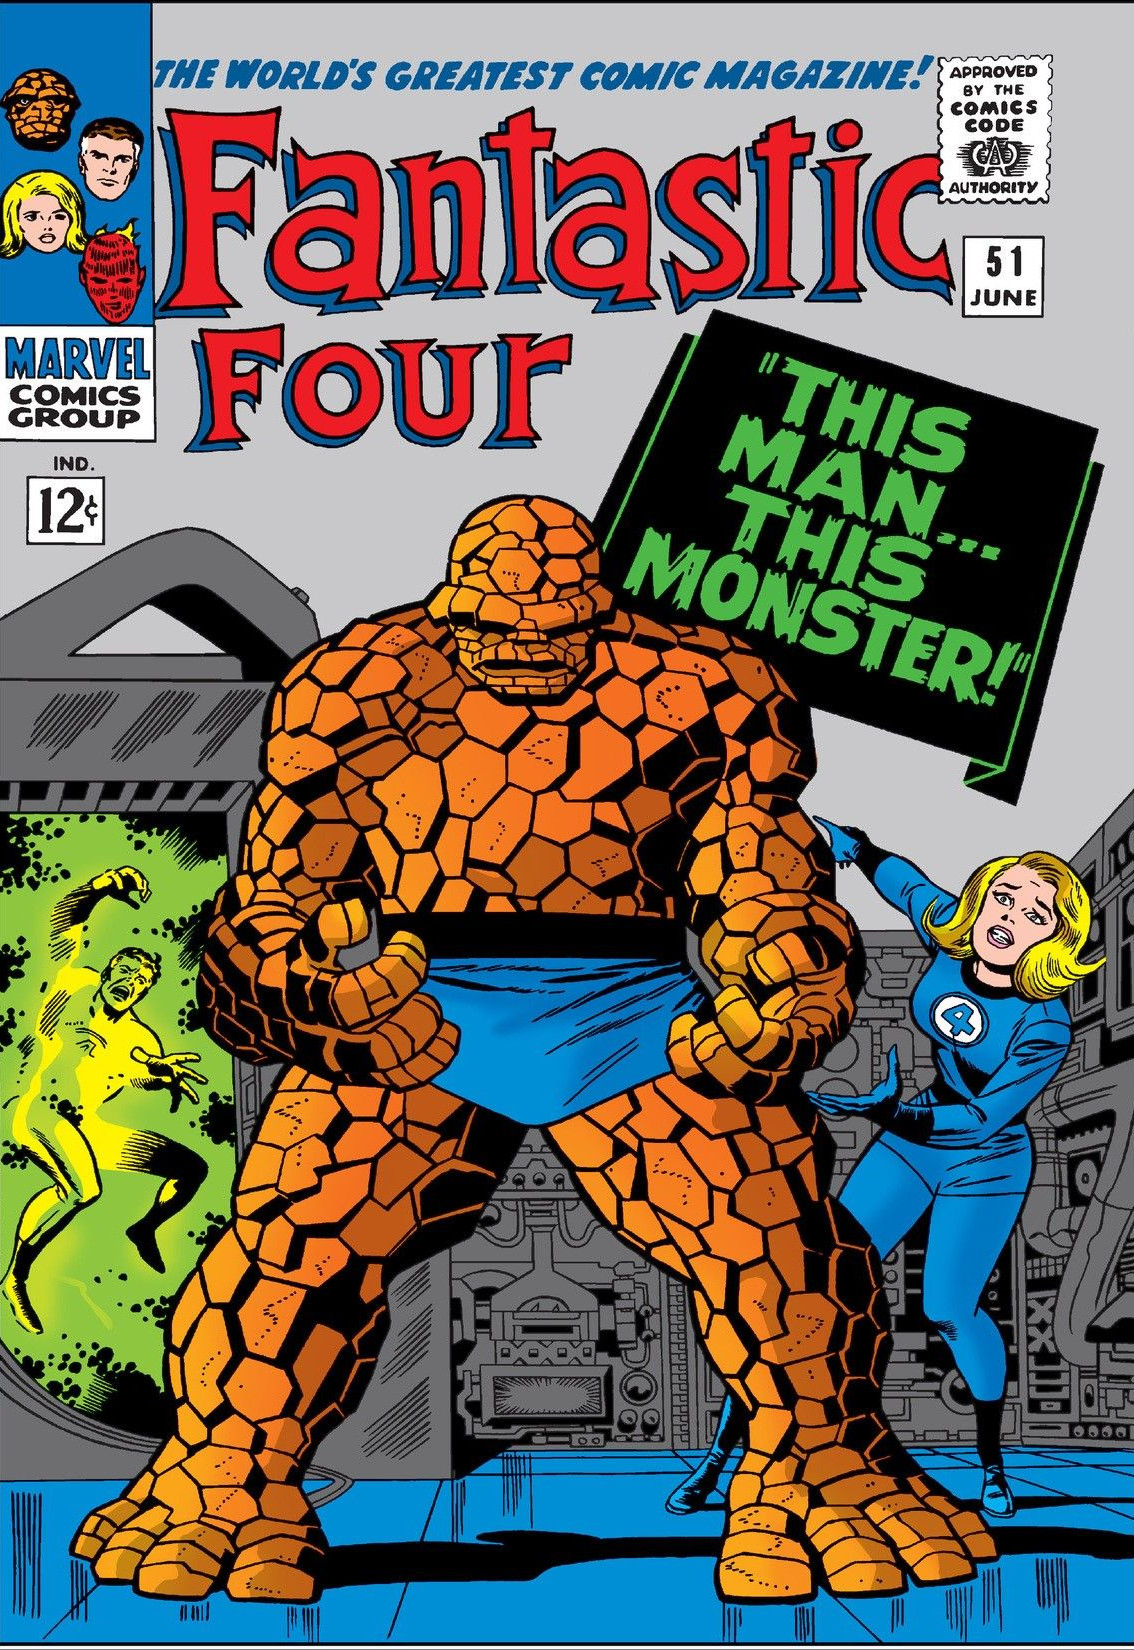 Fantastic Four Vol 1 51